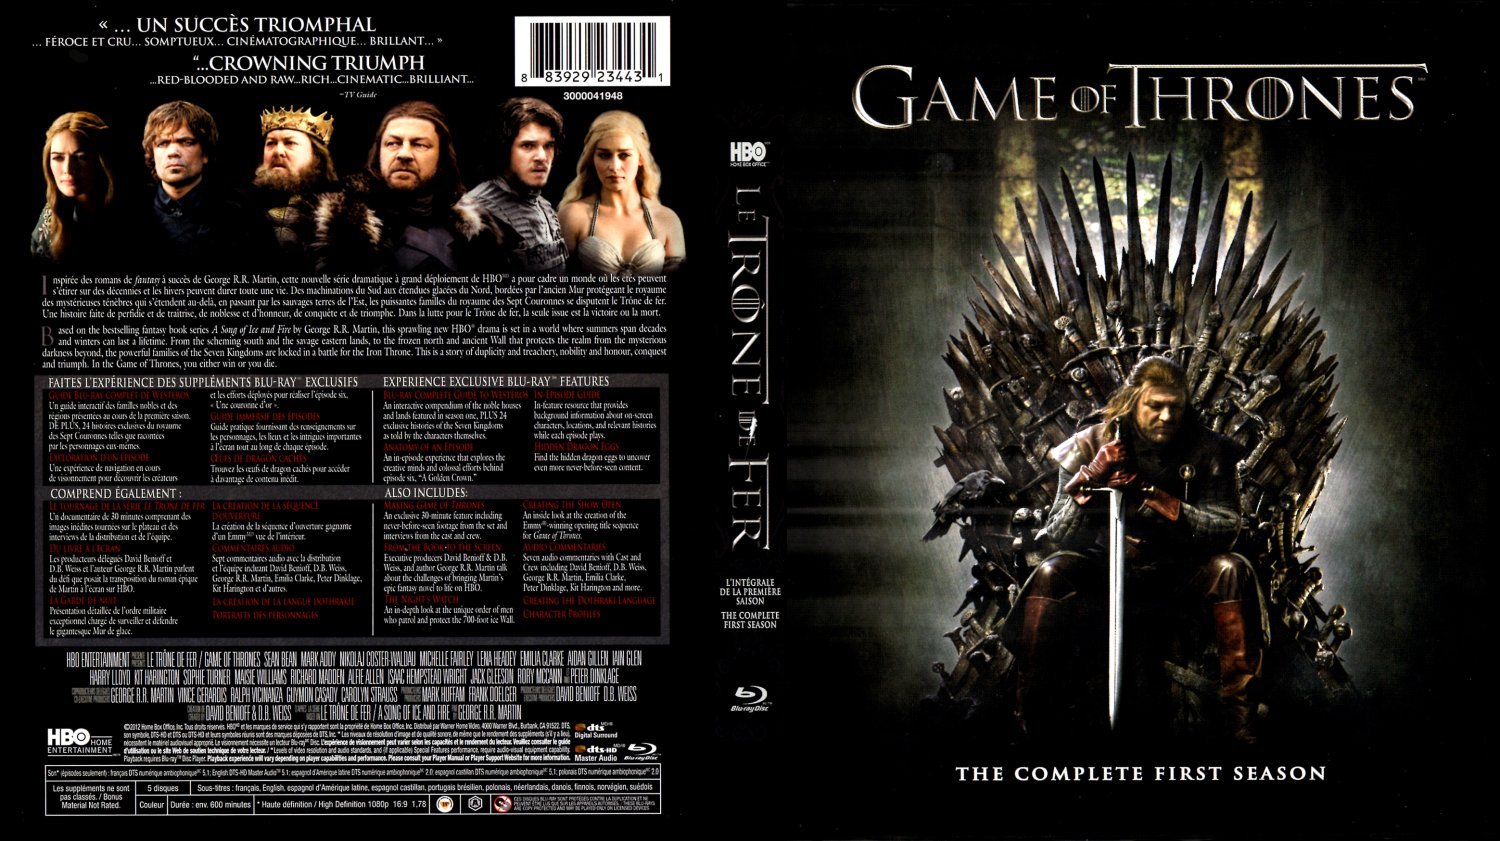 game of thrones season 2 dvd cover quotes. Black Bedroom Furniture Sets. Home Design Ideas